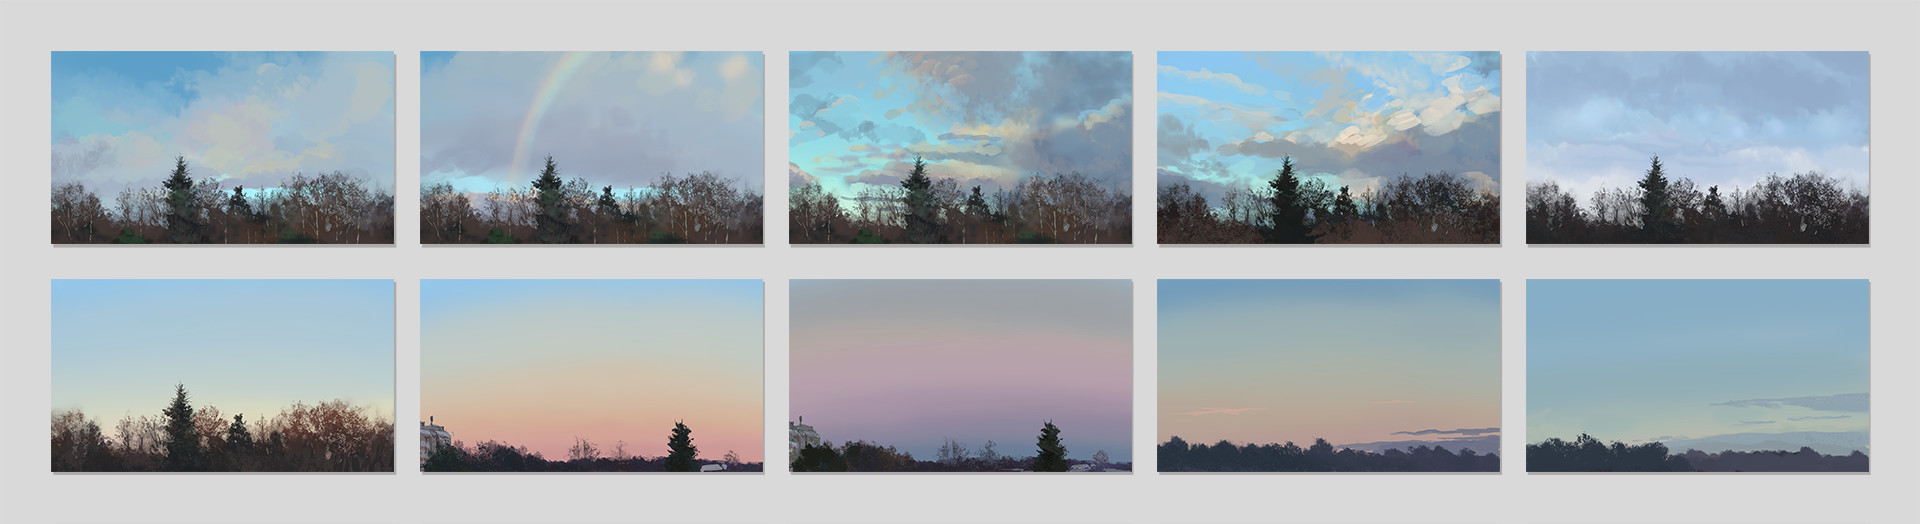 November-December 2016 (Latter view is another view out of the window, just more towards east)